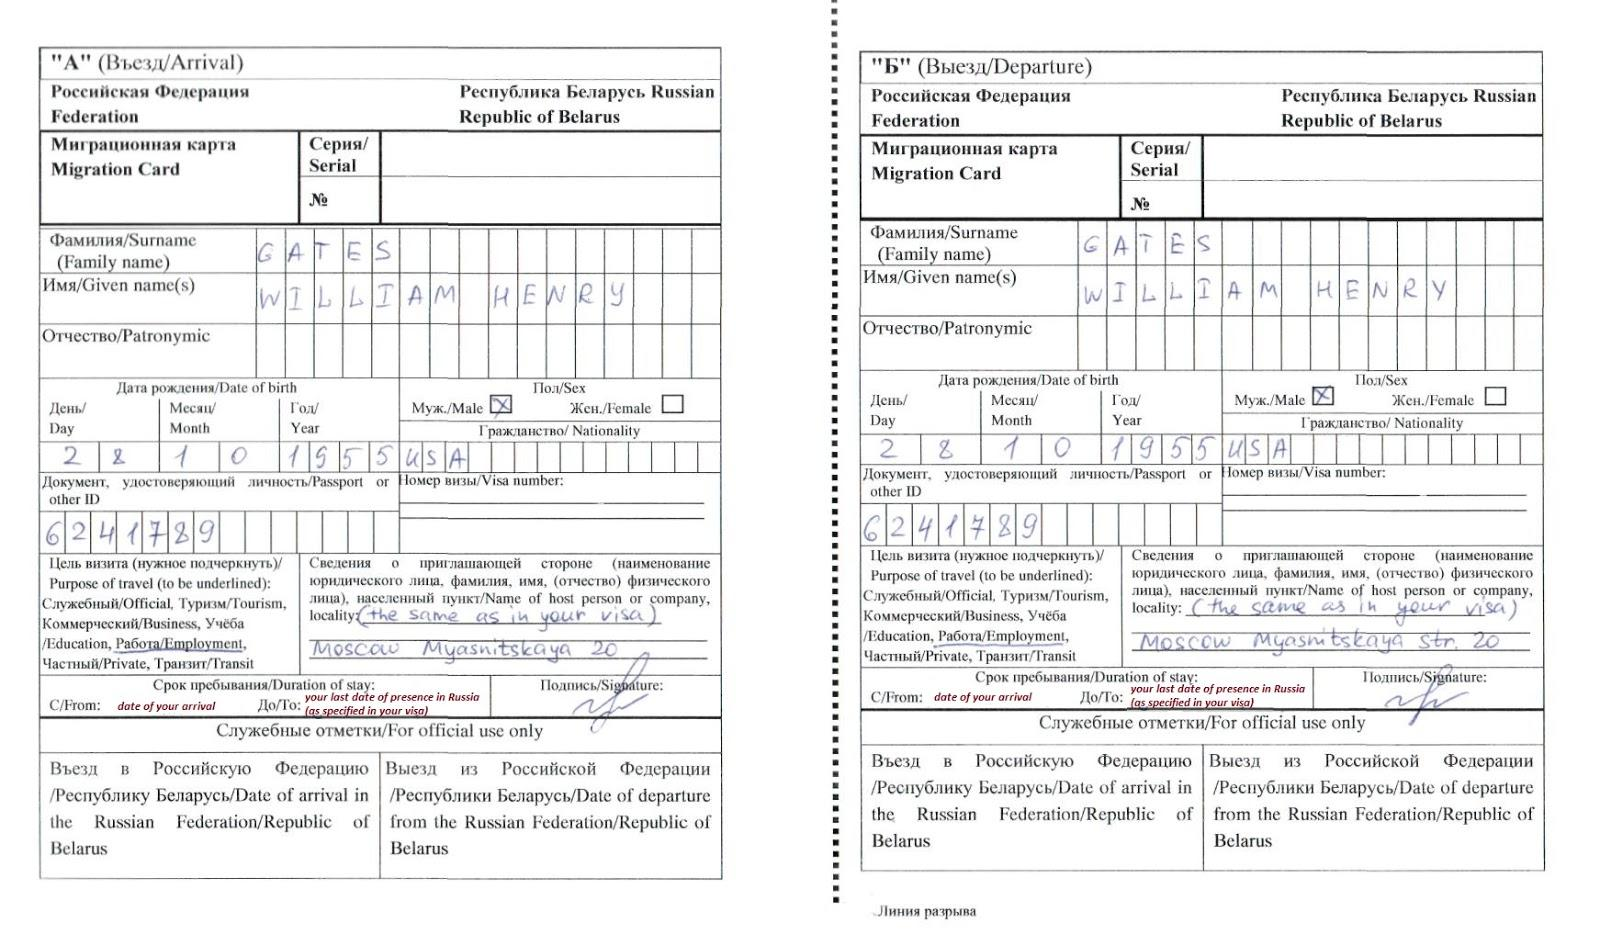 Sample of Russian migration card